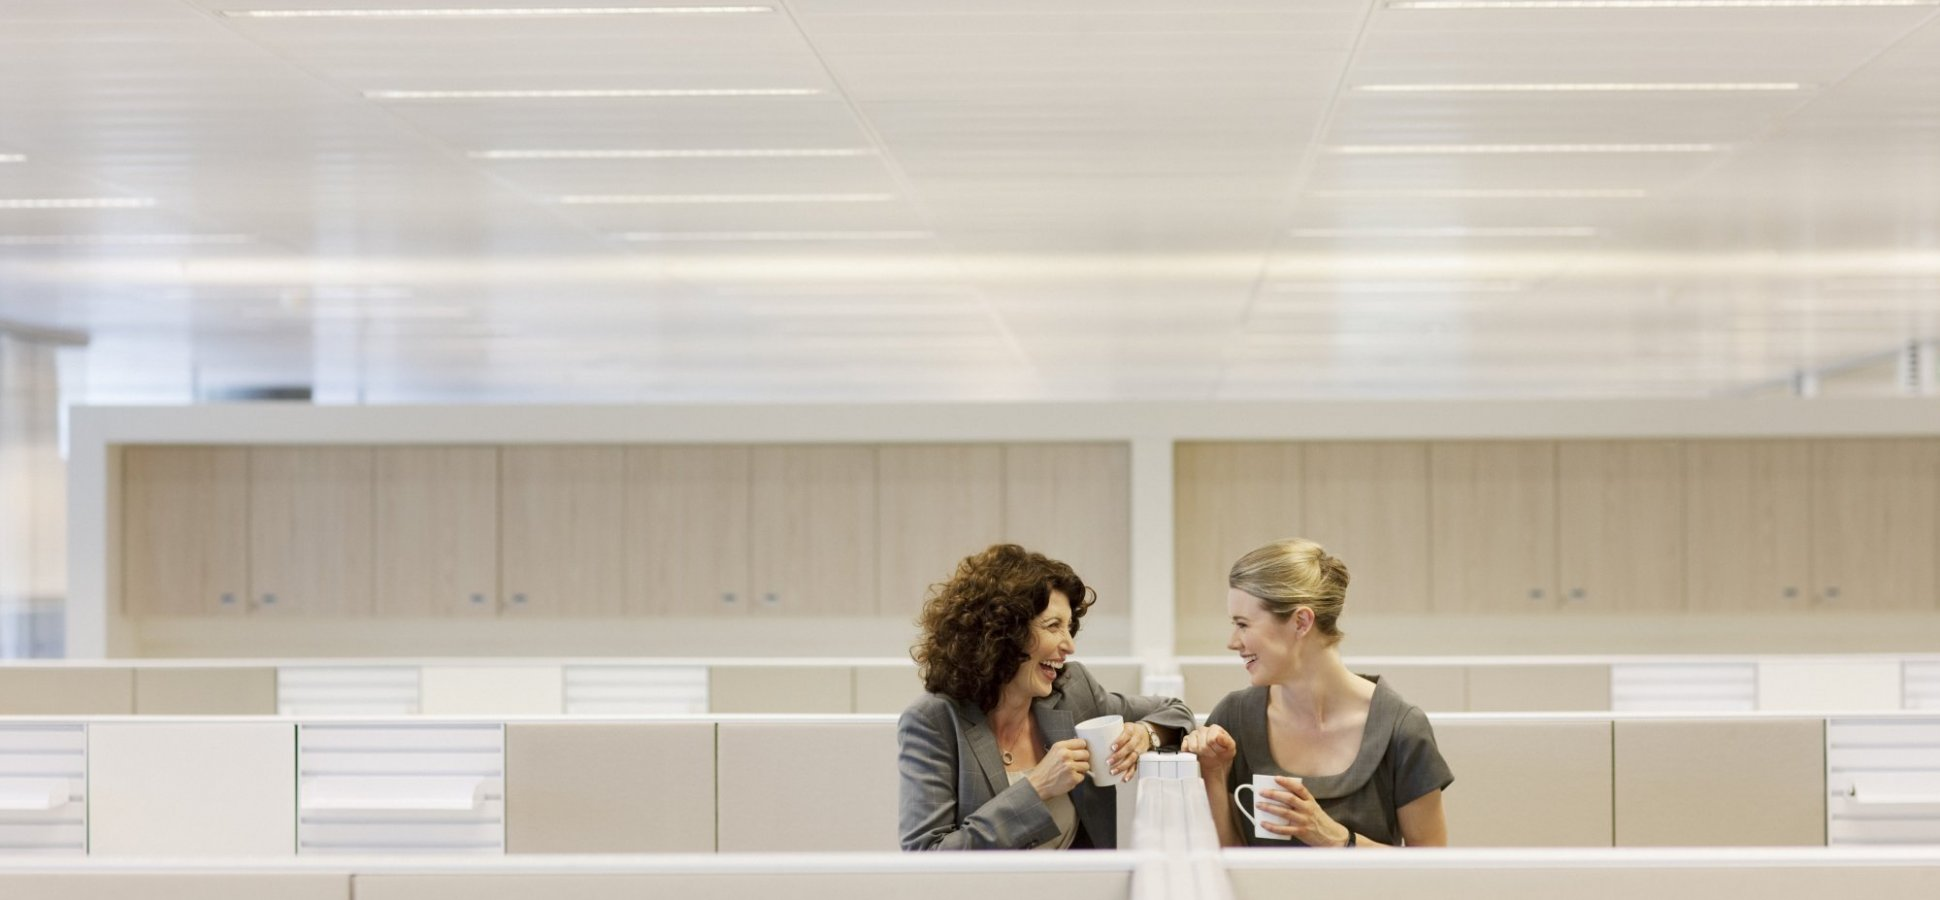 How to Do Office Small Talk Right Without Coming Off as Schmoozy